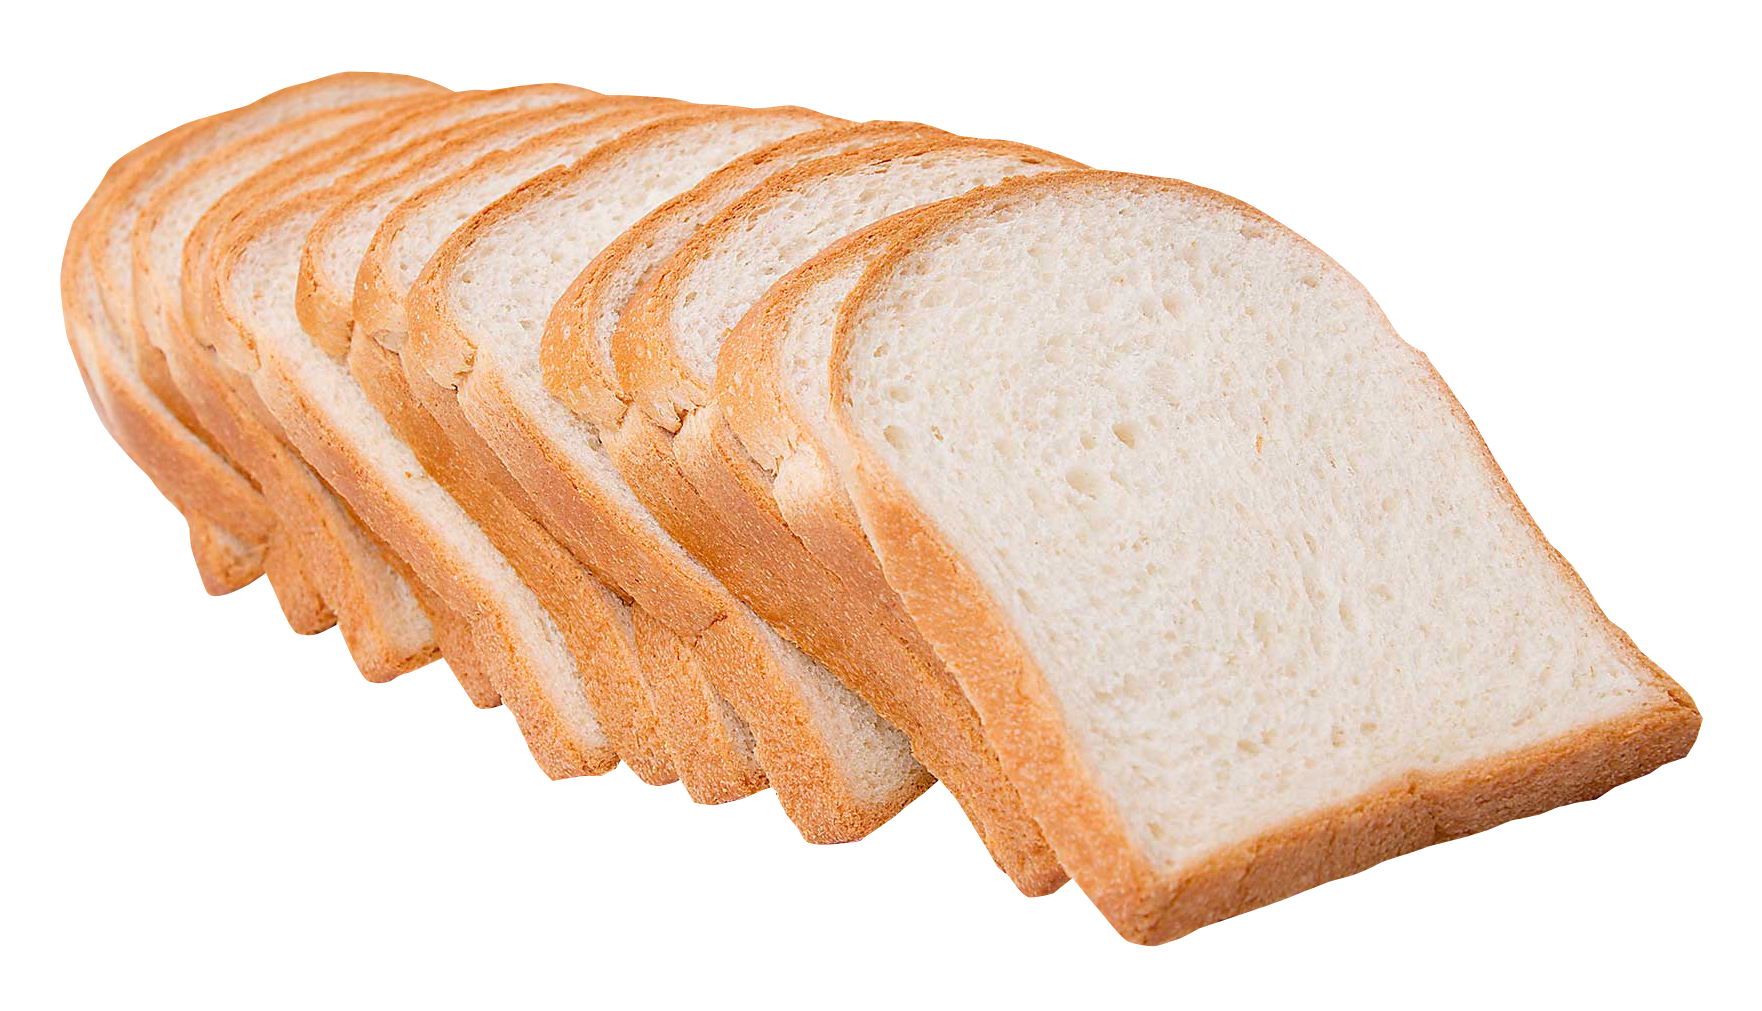 White Bread Png - Sliced White Bread PNG Image - PurePNG | Free transparent CC0 PNG ...